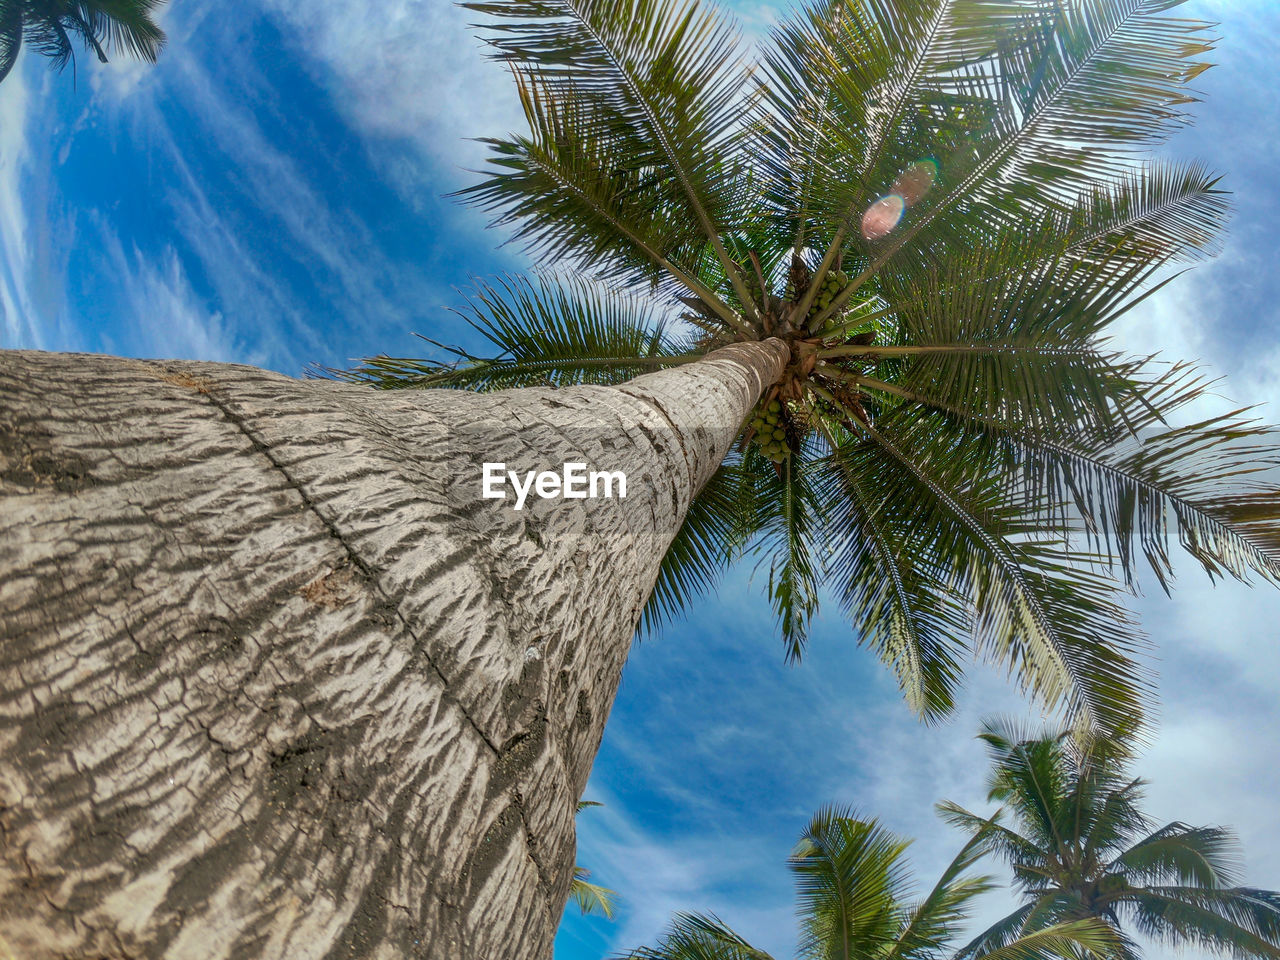 palm tree, tropical climate, tree, sky, plant, nature, no people, low angle view, trunk, tree trunk, cloud - sky, growth, palm leaf, beauty in nature, day, coconut palm tree, blue, leaf, outdoors, tropical tree, directly below, leaves